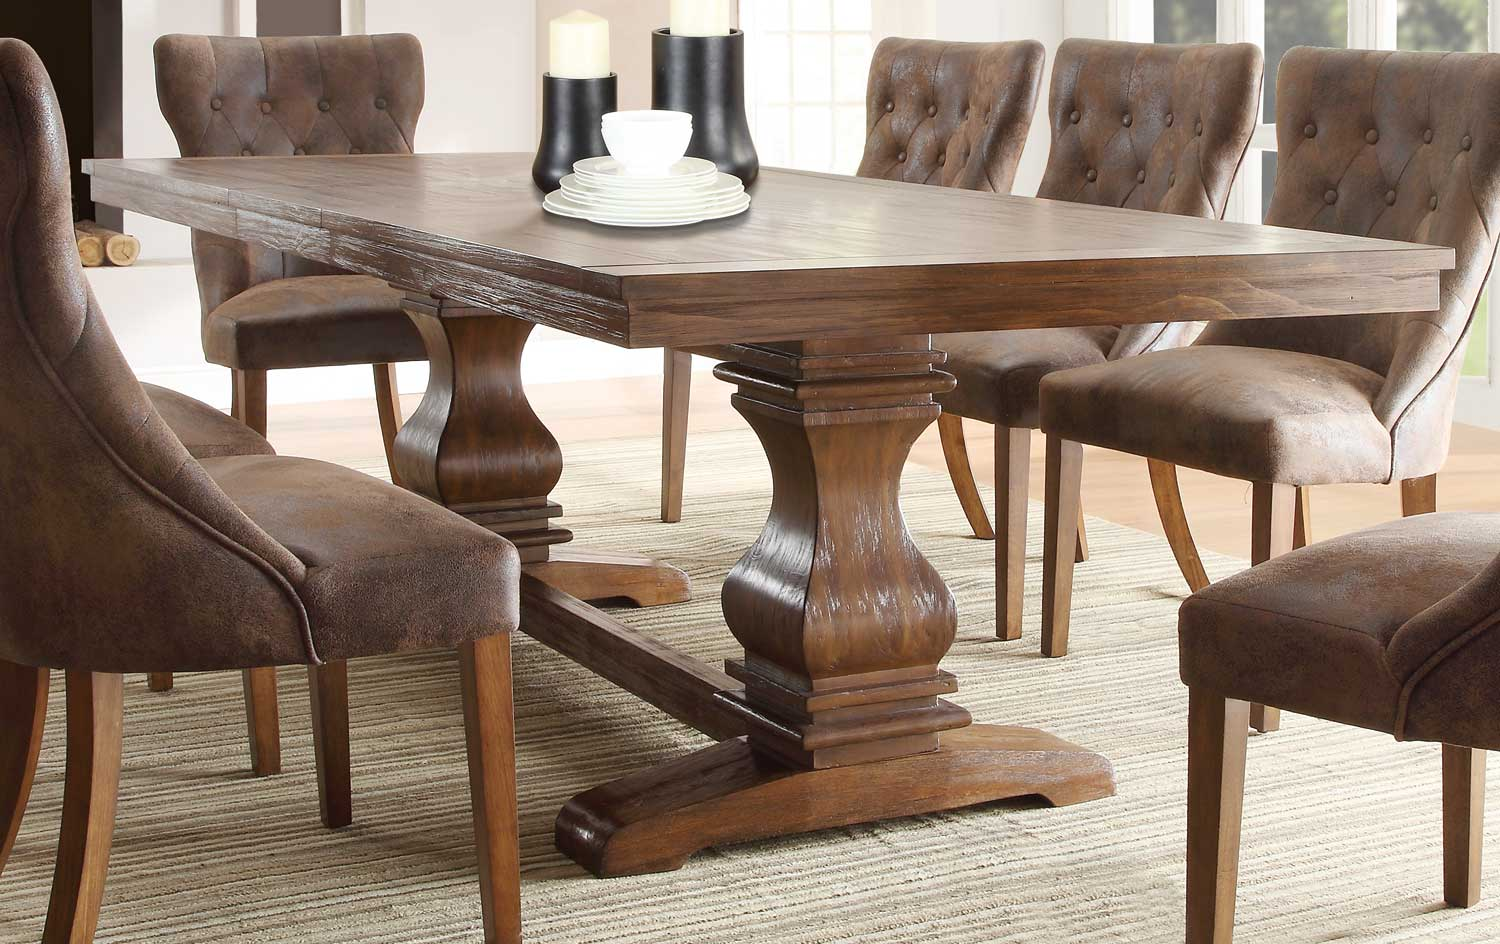 Used Dining Chairs For Sale Gauteng Images Gallery Homelegance Marie Louise Table Rustic Oak Brown